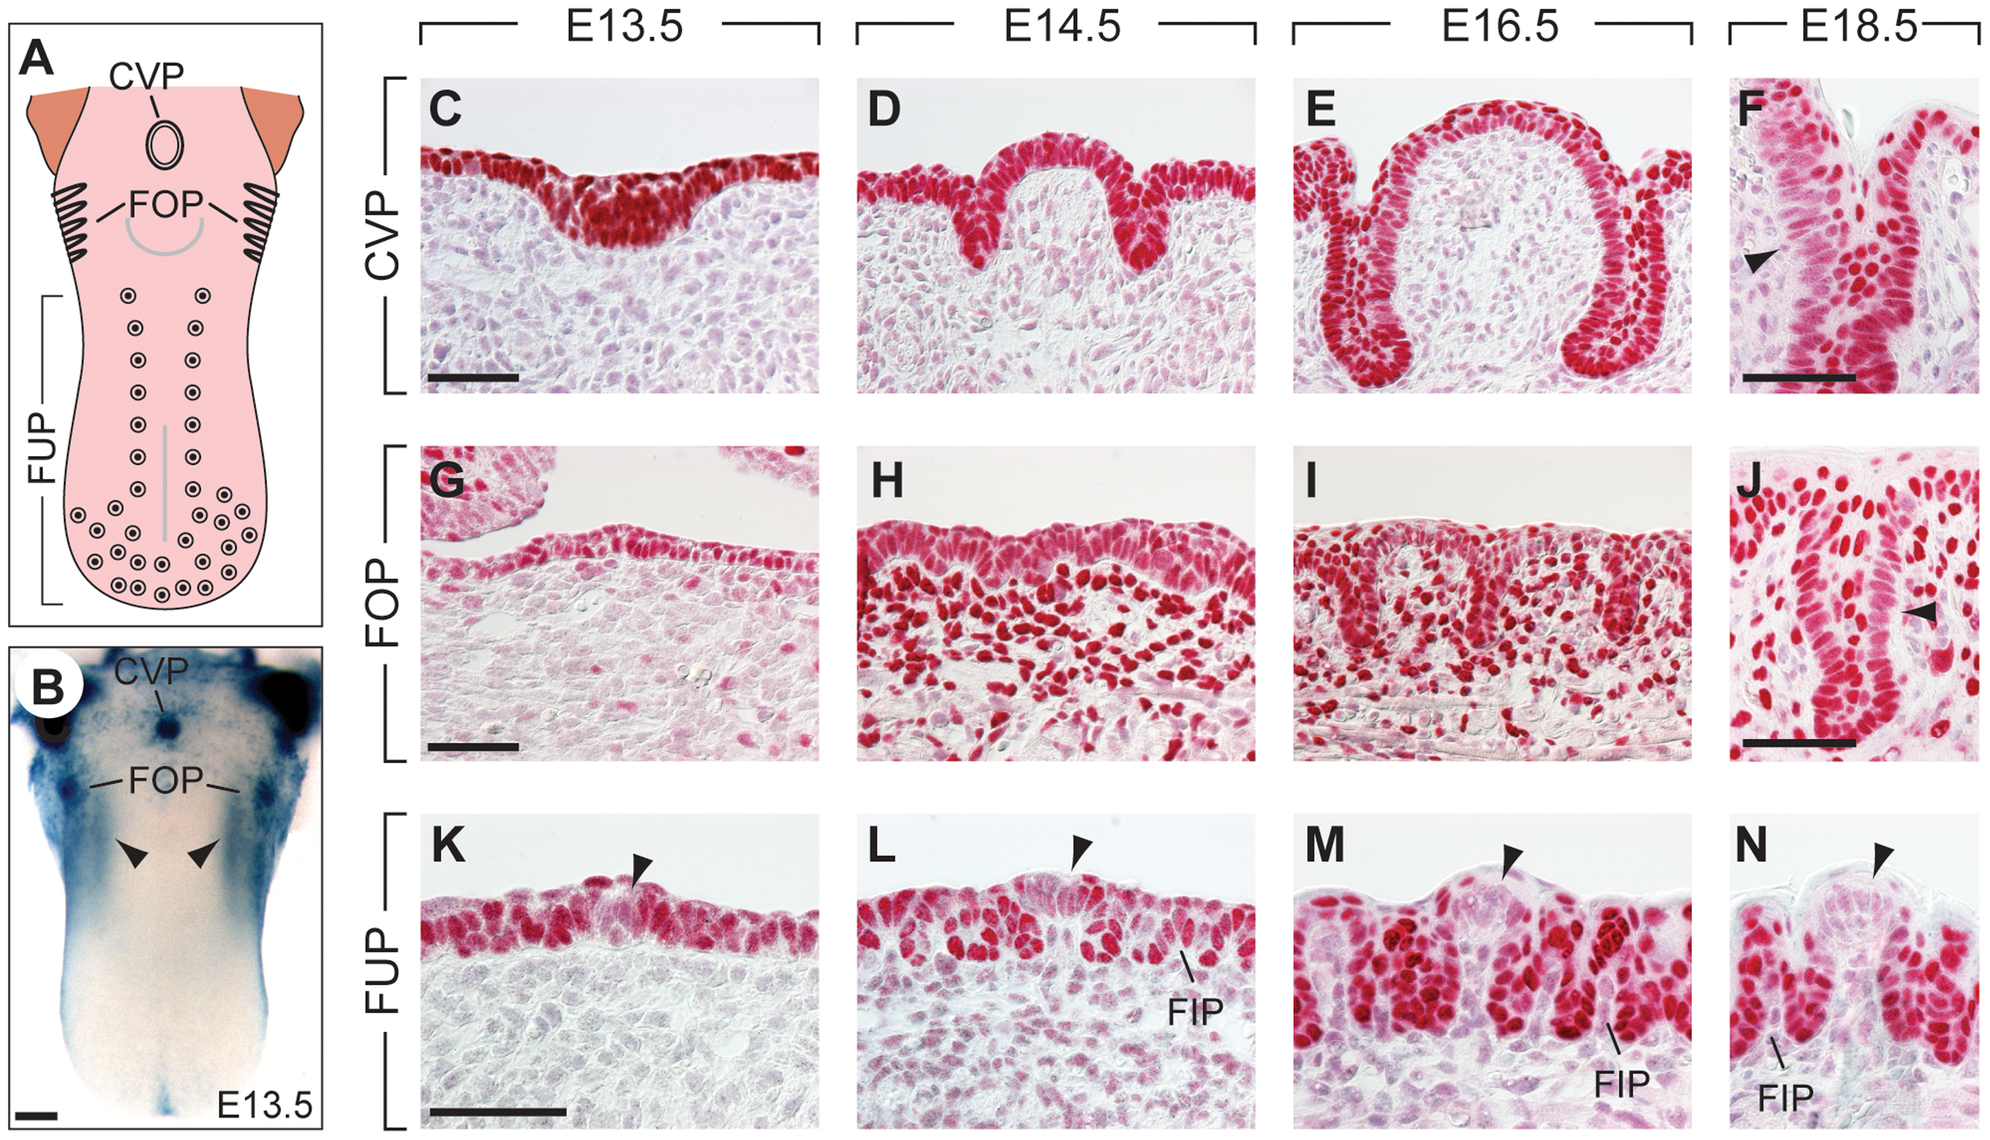 Expression patterns of Pax9 in different taste papillae of the embryonic mouse tongue.